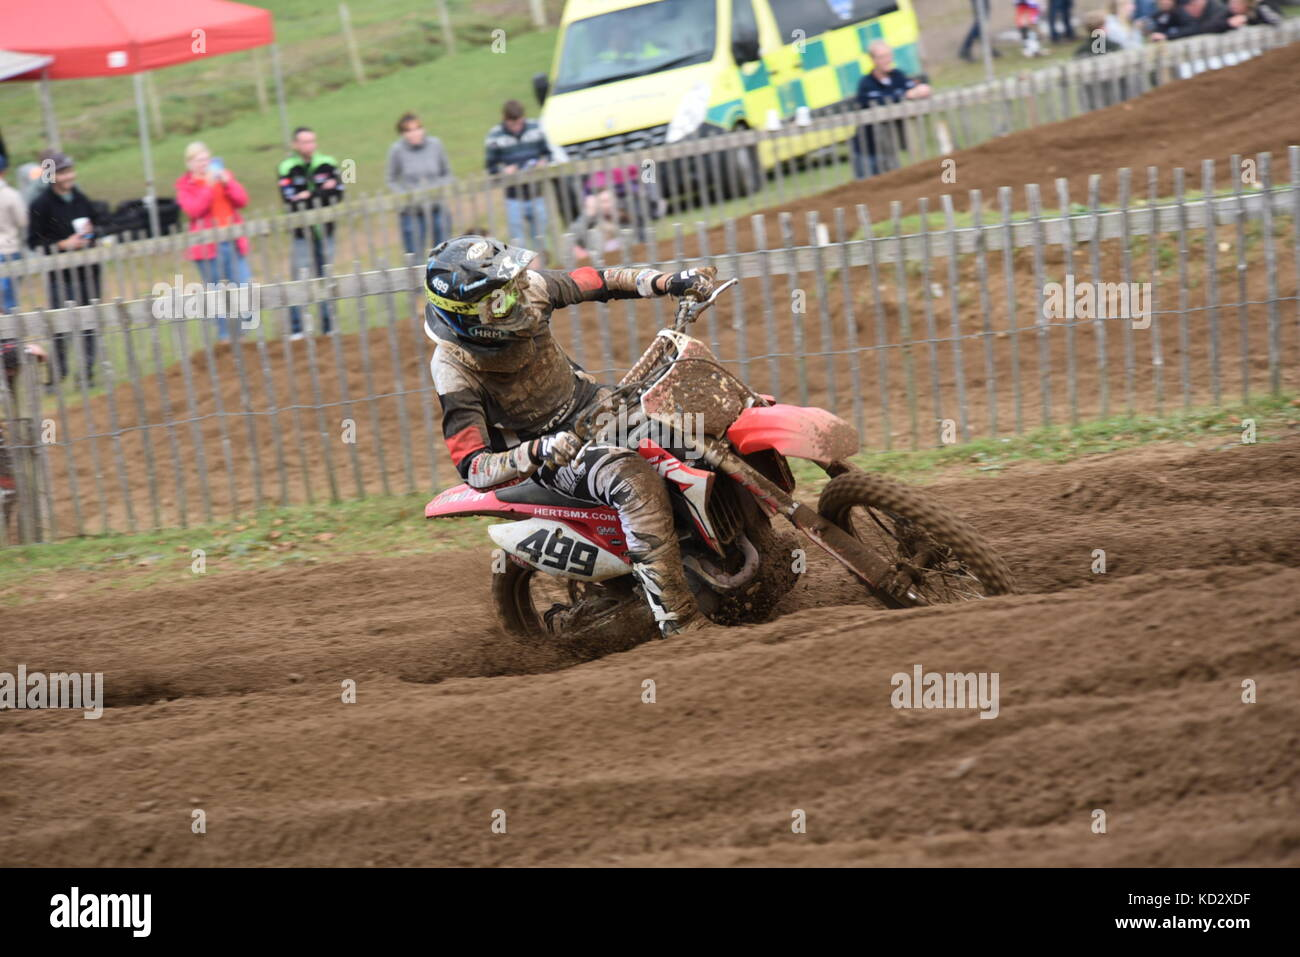 Eastern motocross Championships final round - Stock Image